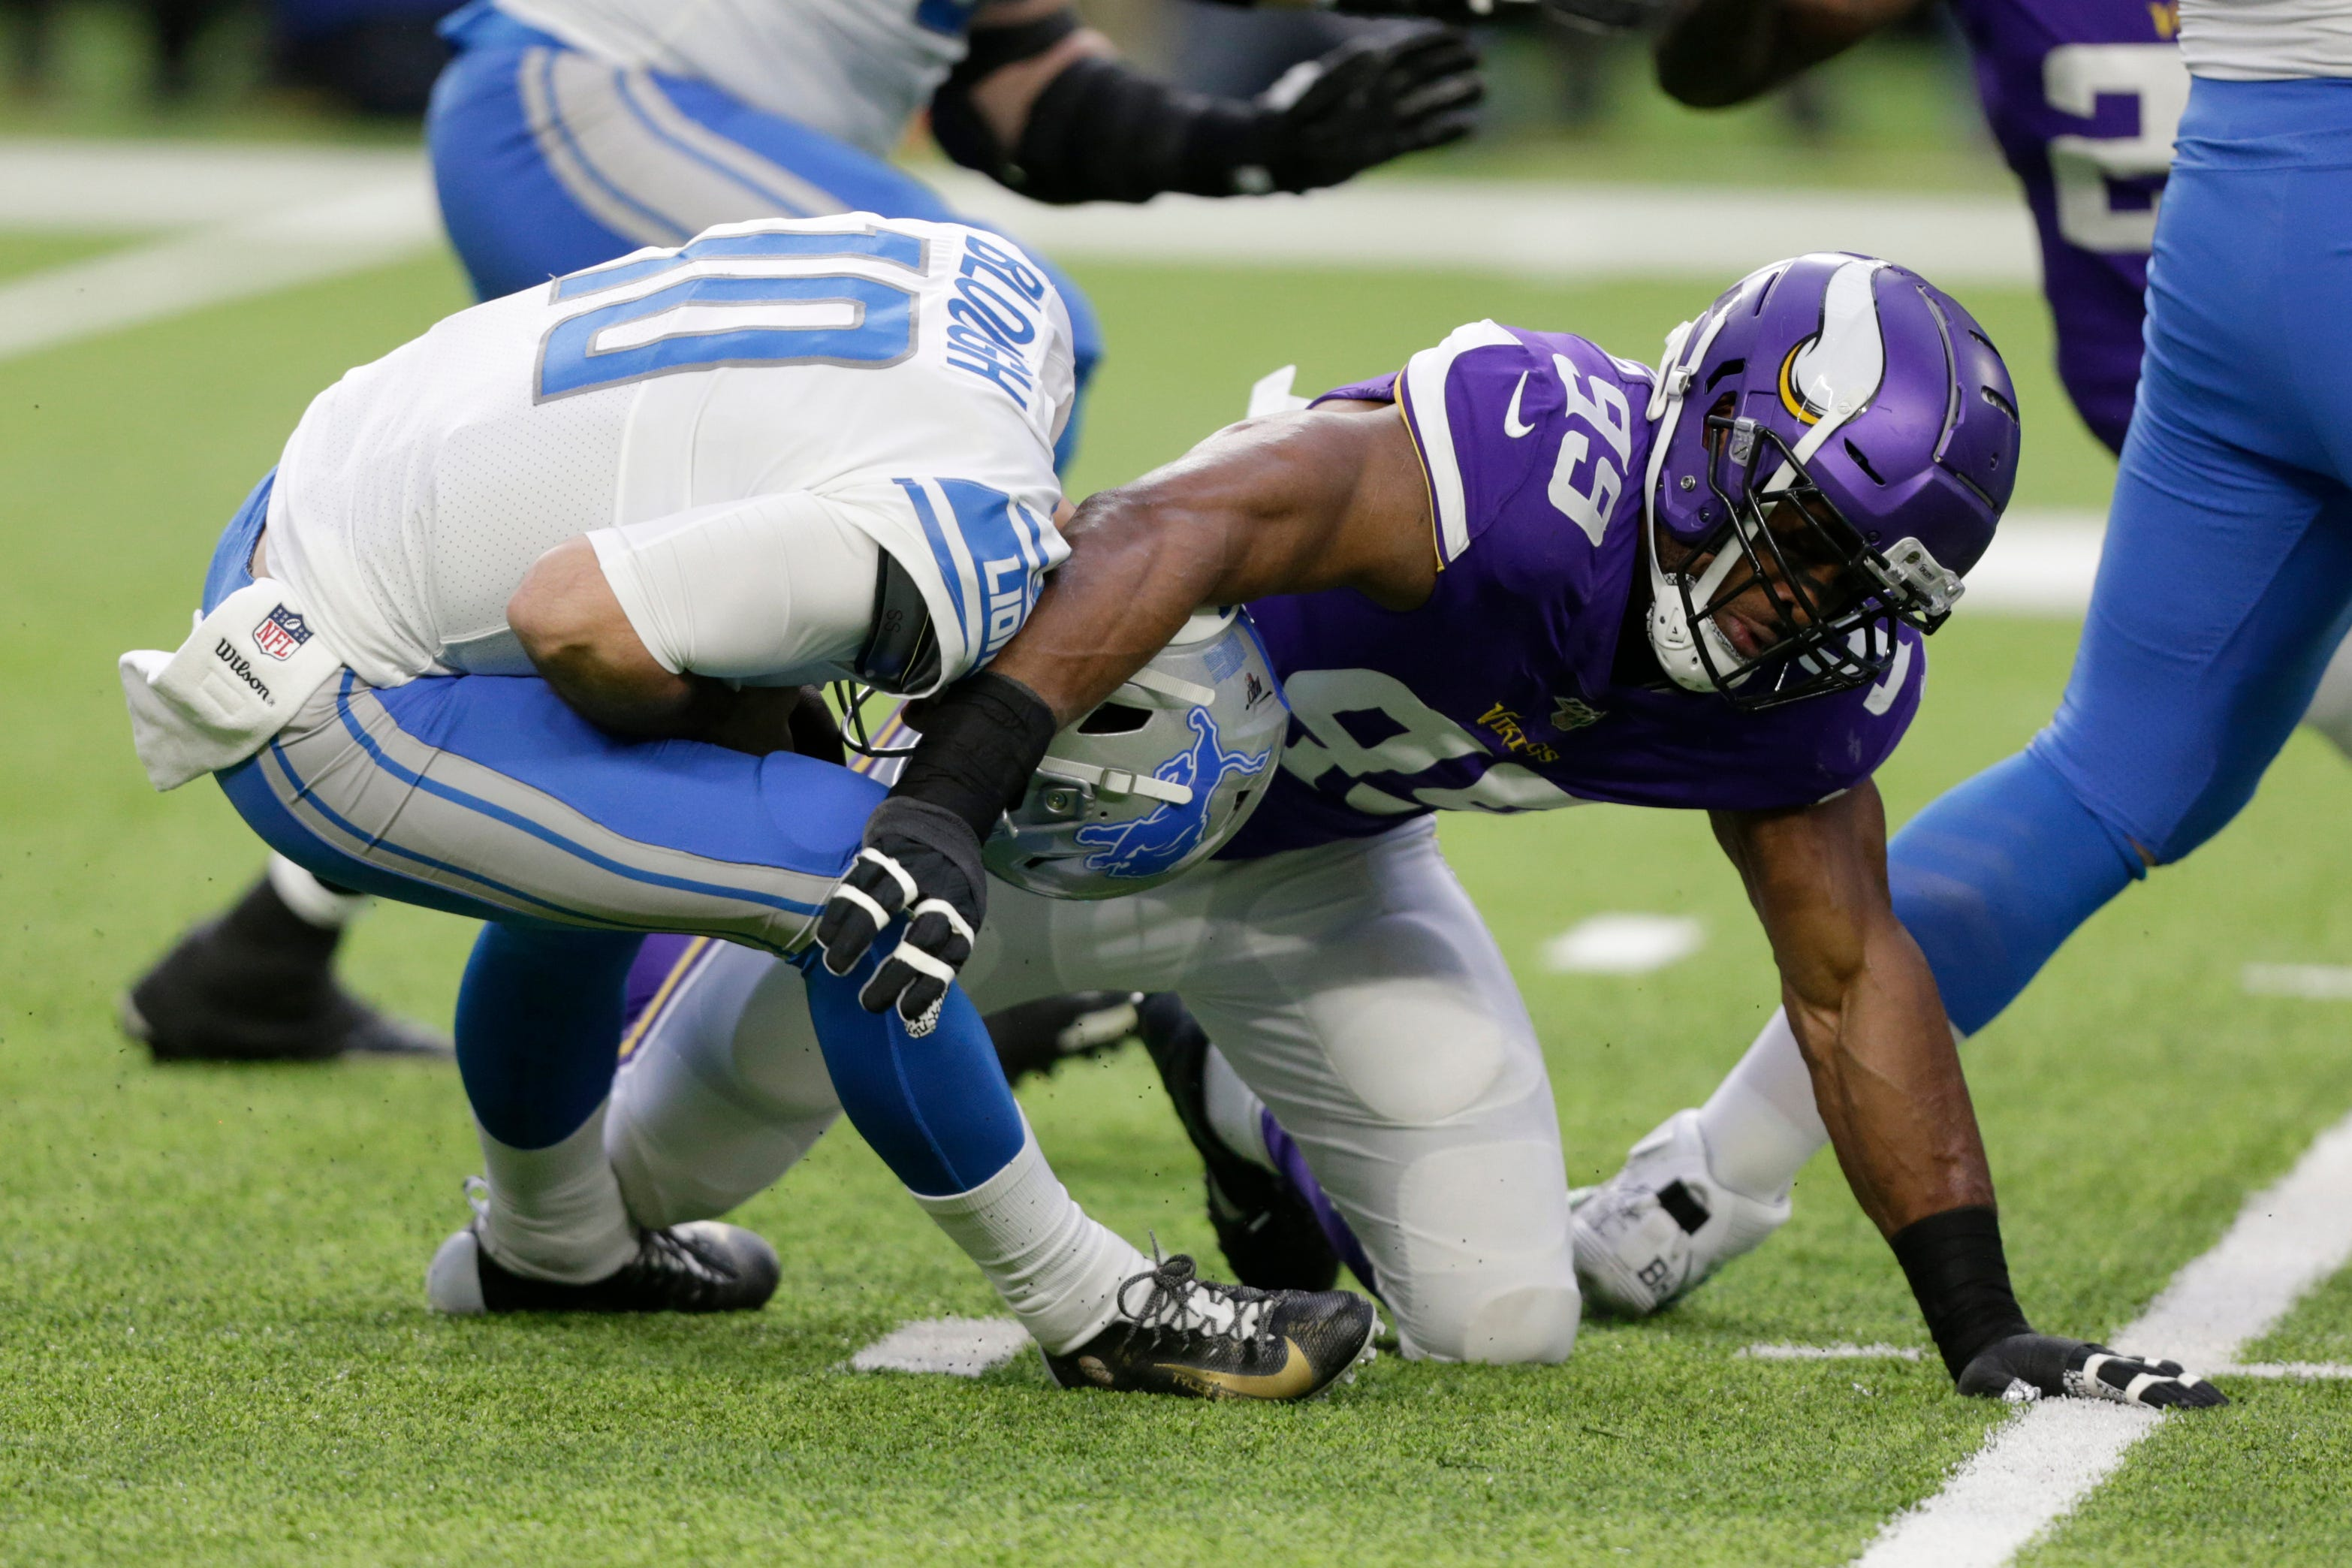 Opinion: The Detroit Lions are hopeless after dropping sixth consecutive game